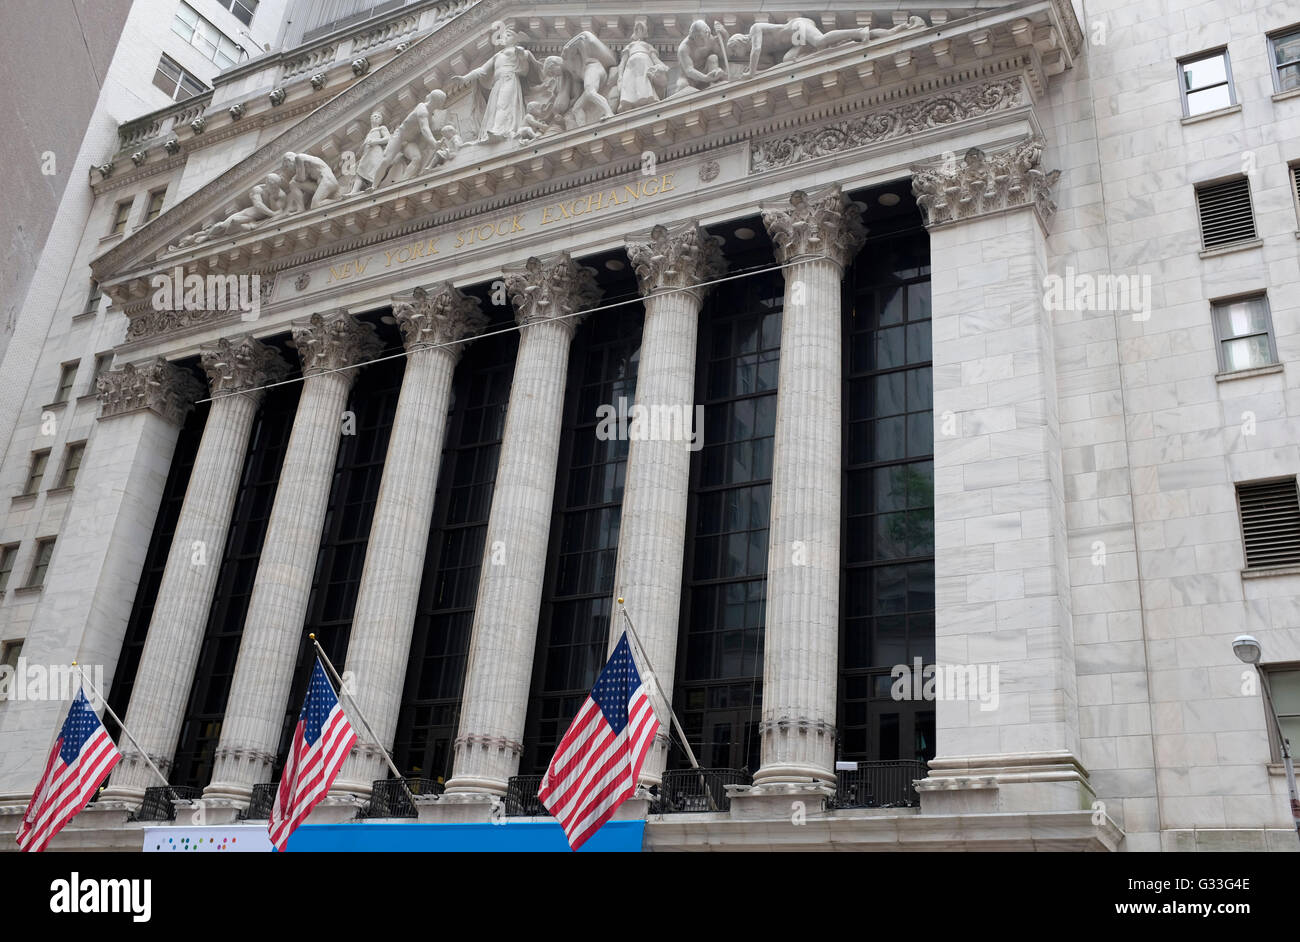 New York Stock Exchange, New York City, USA - Stock Image